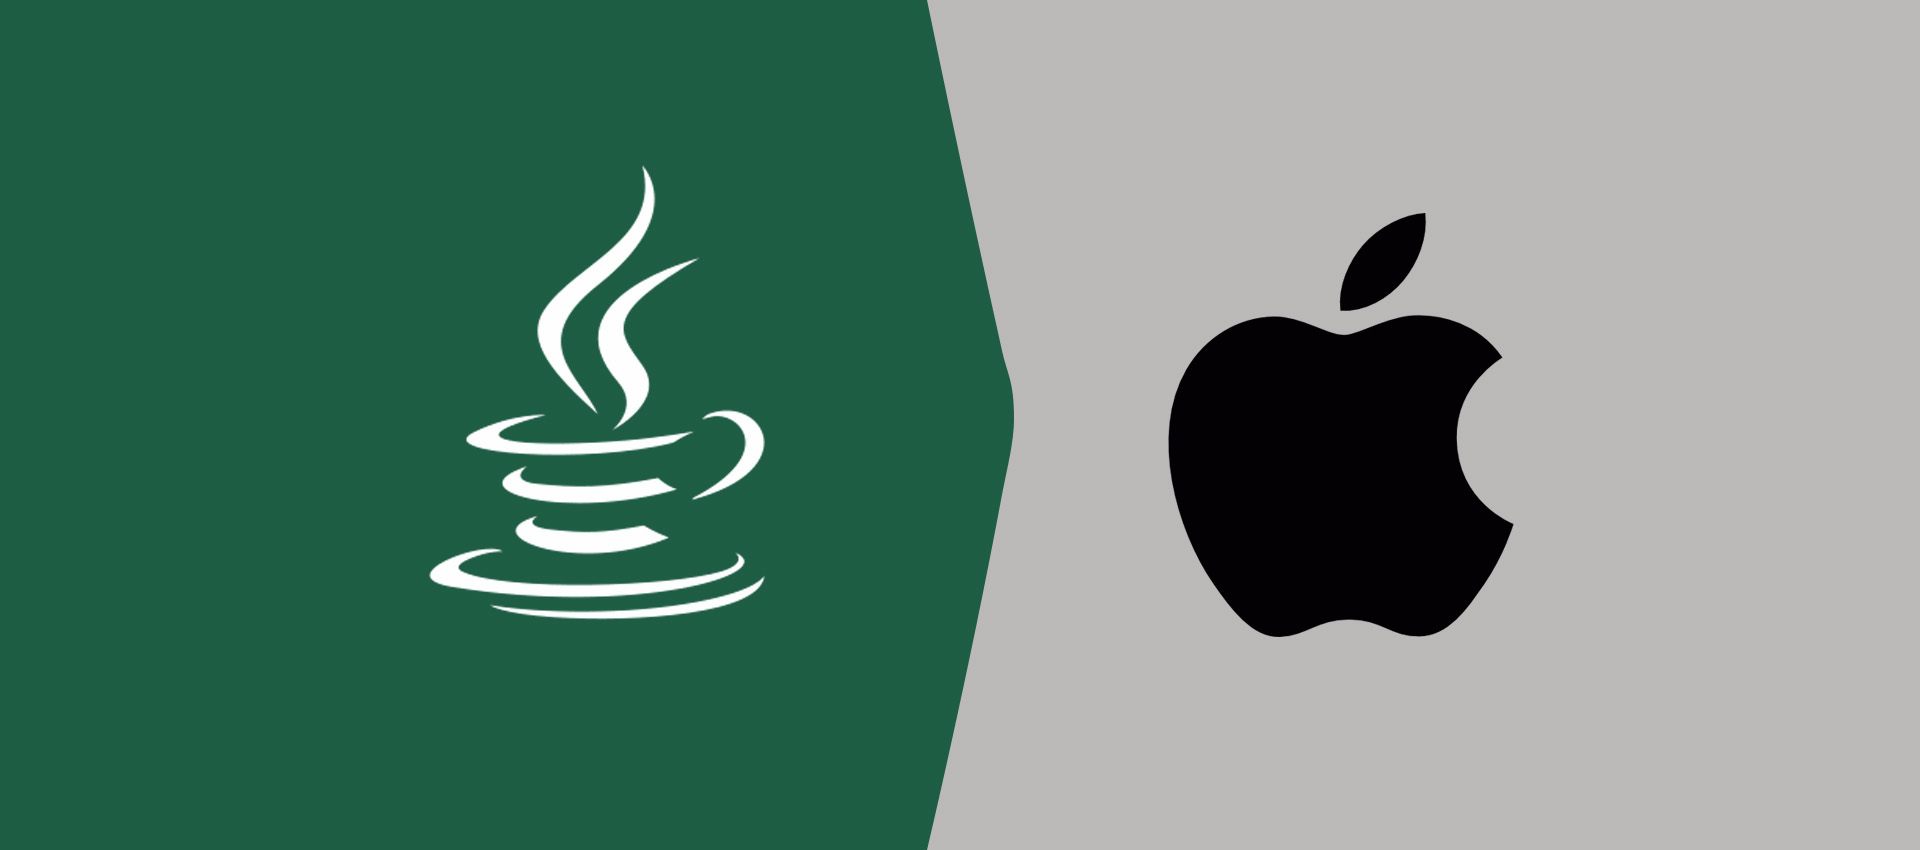 How To Install Java 15 On Mac